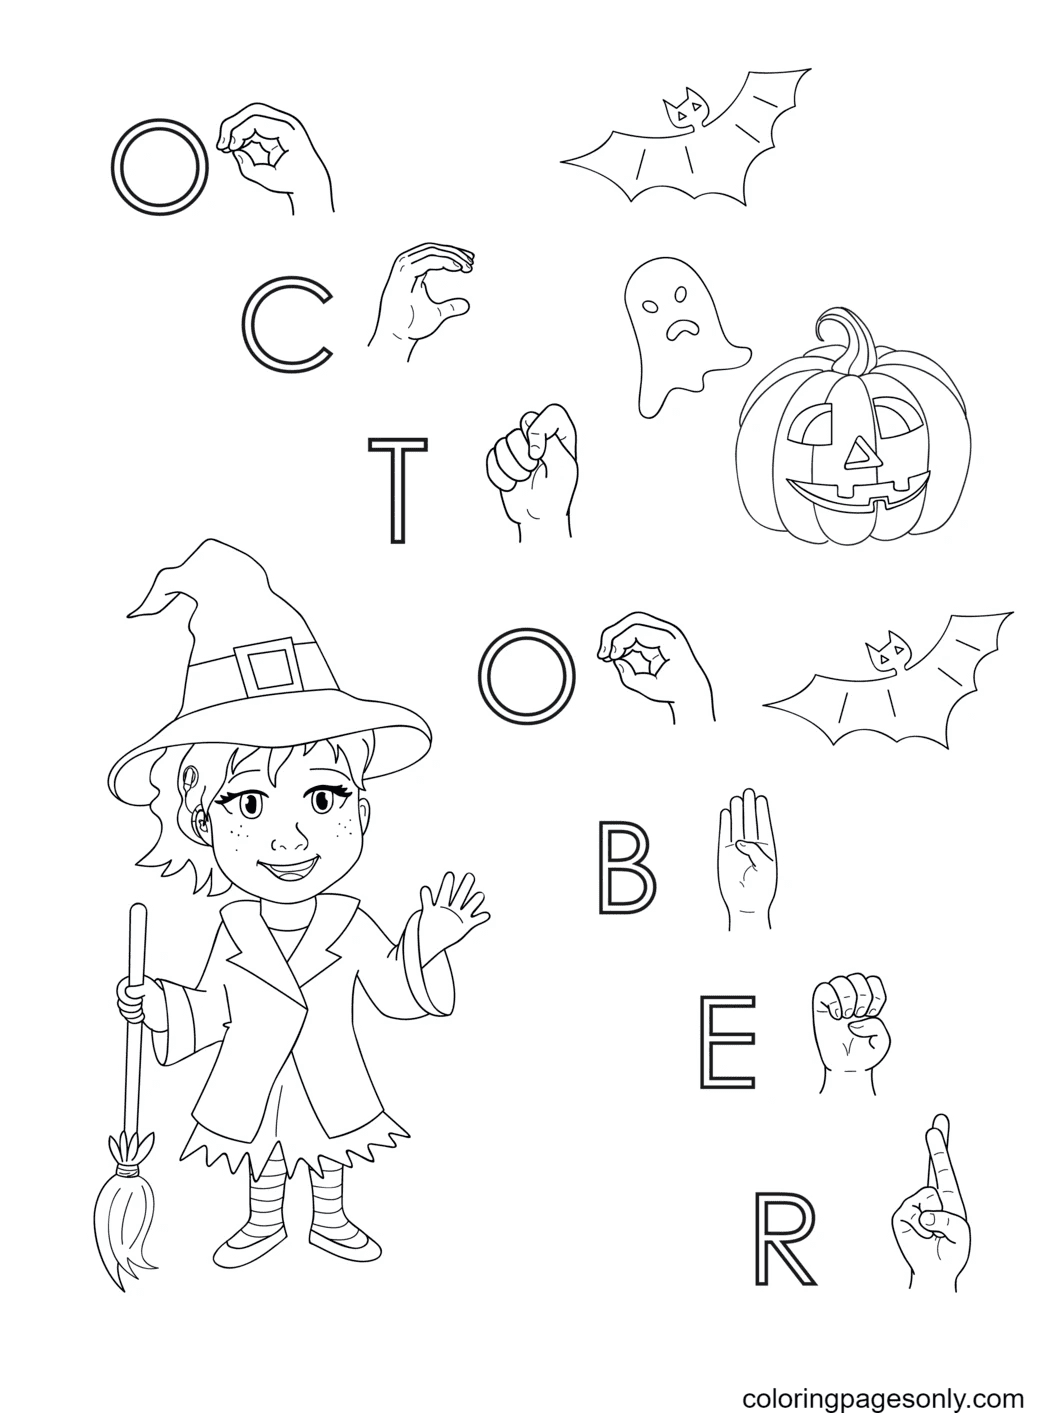 October Printable Coloring Page